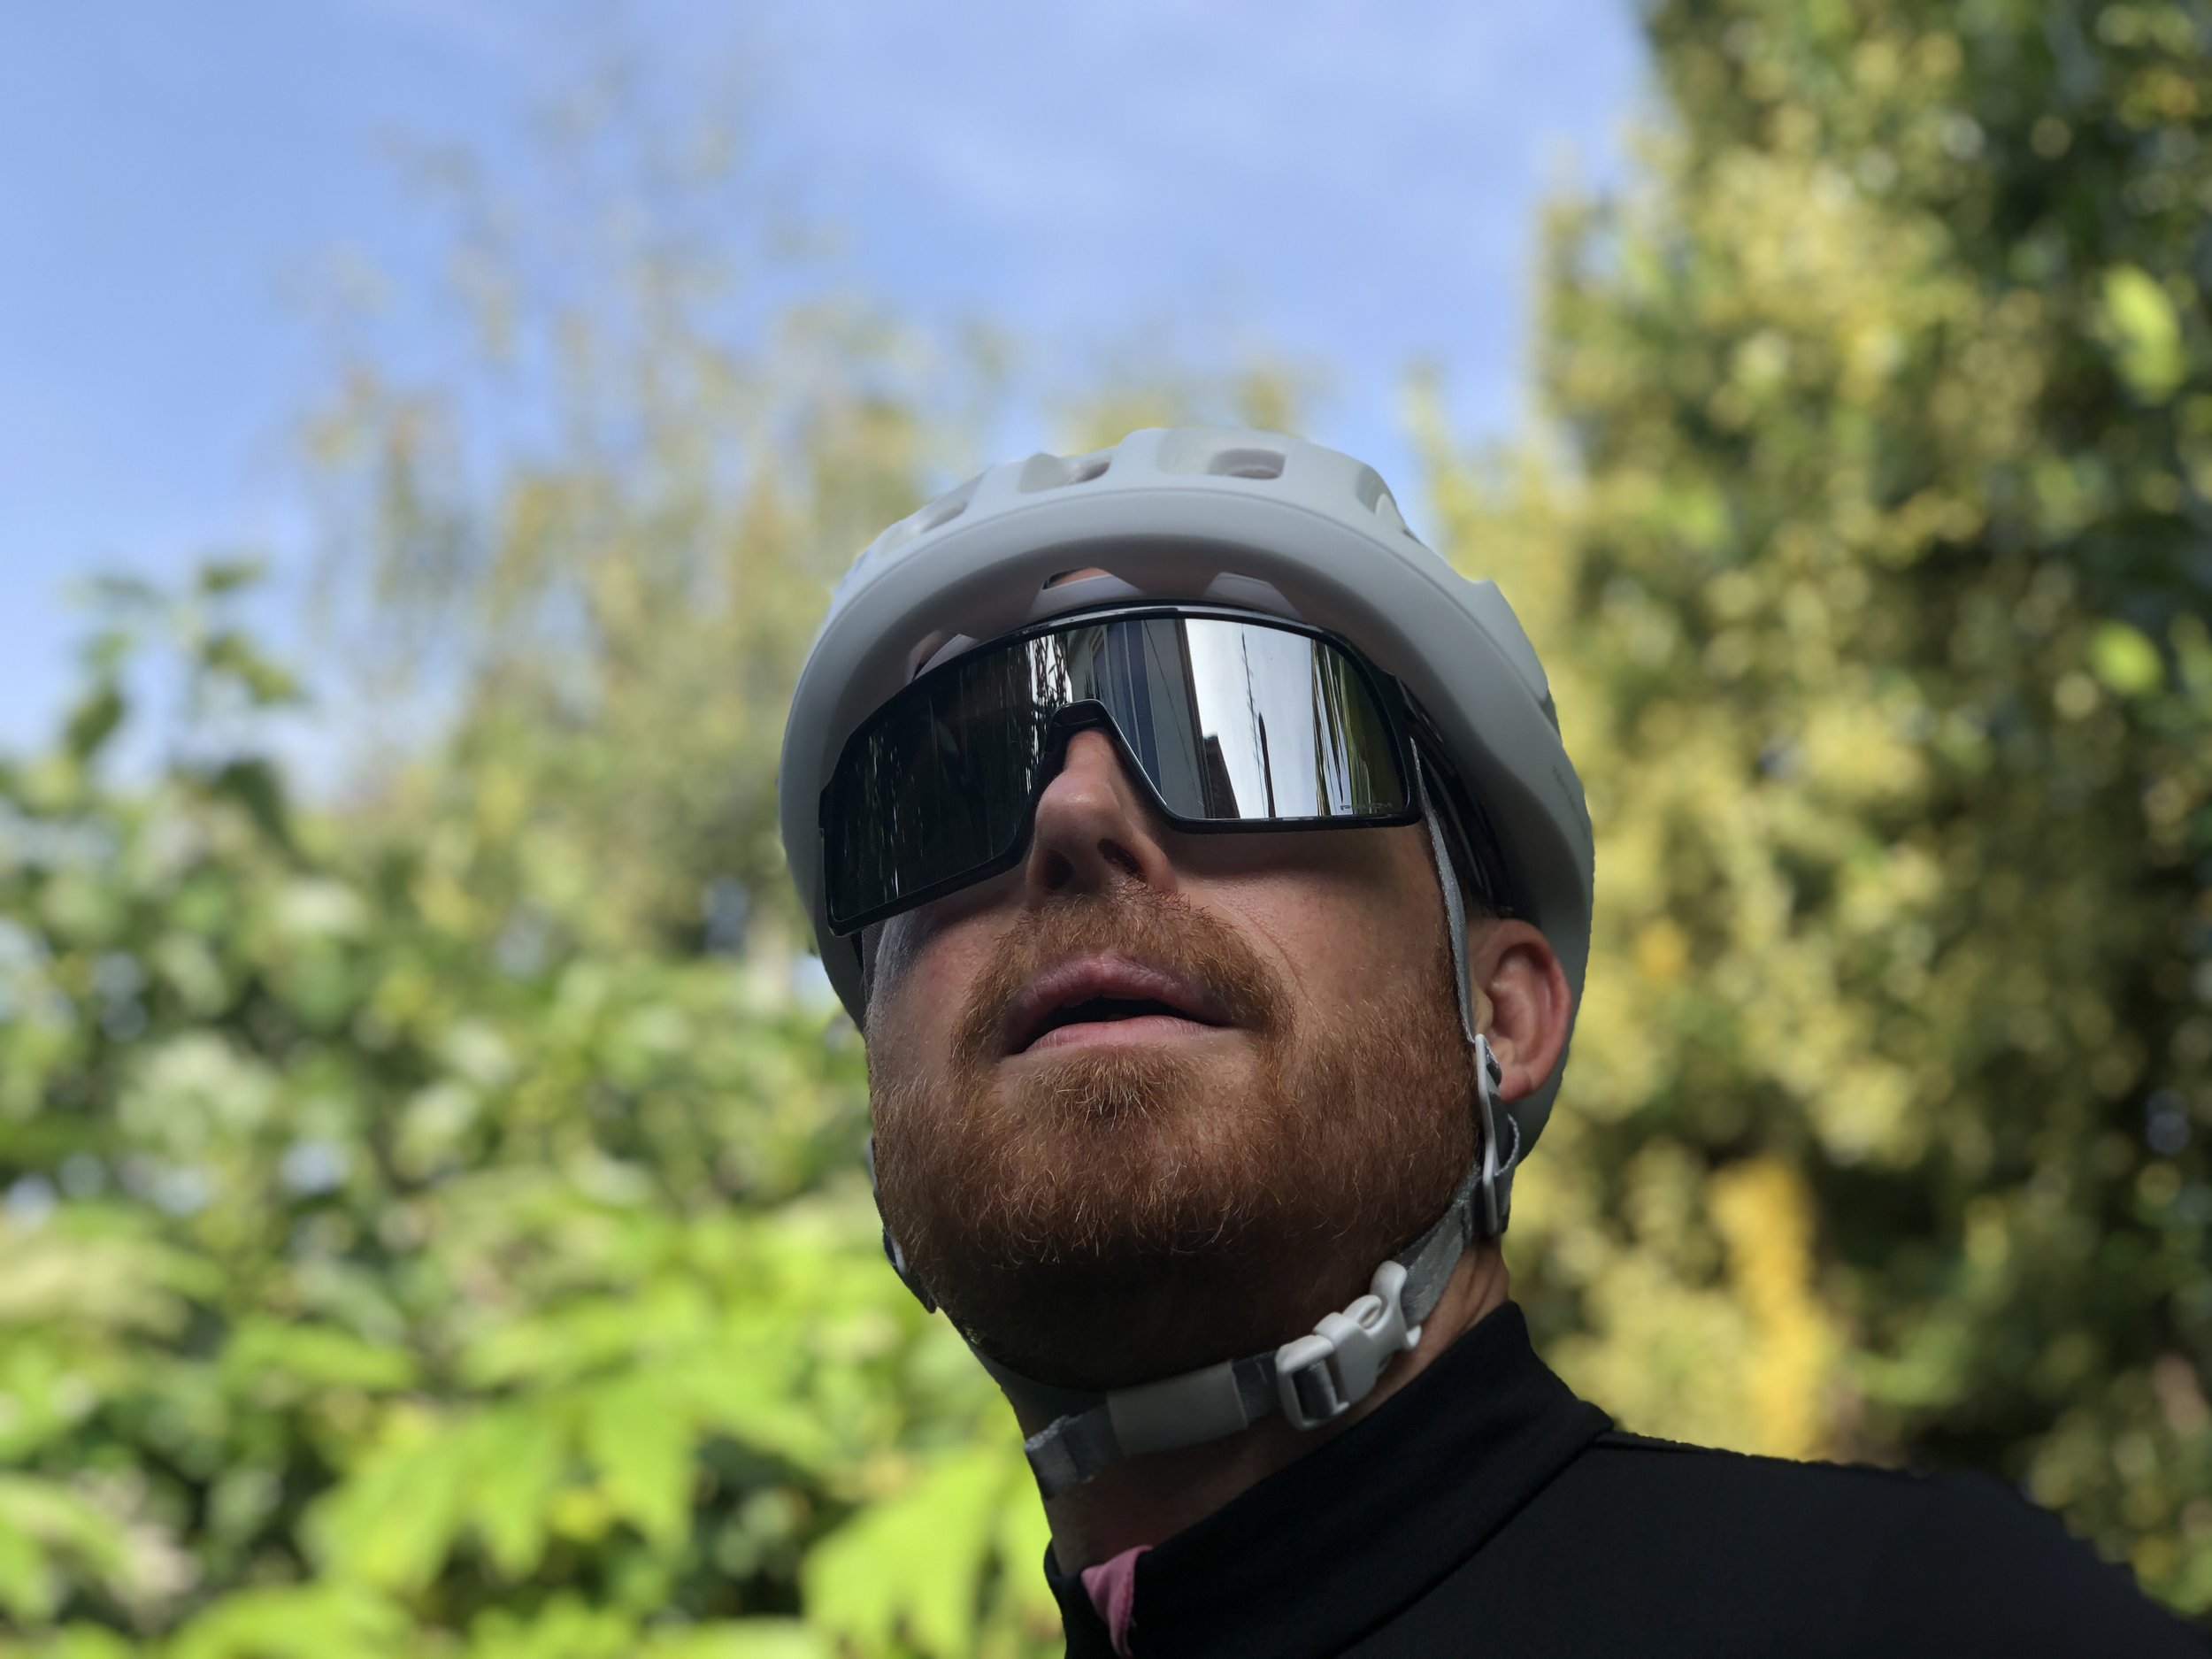 With their high-wrap Prizm lenses, Oakey Sutro offer superb field of vision